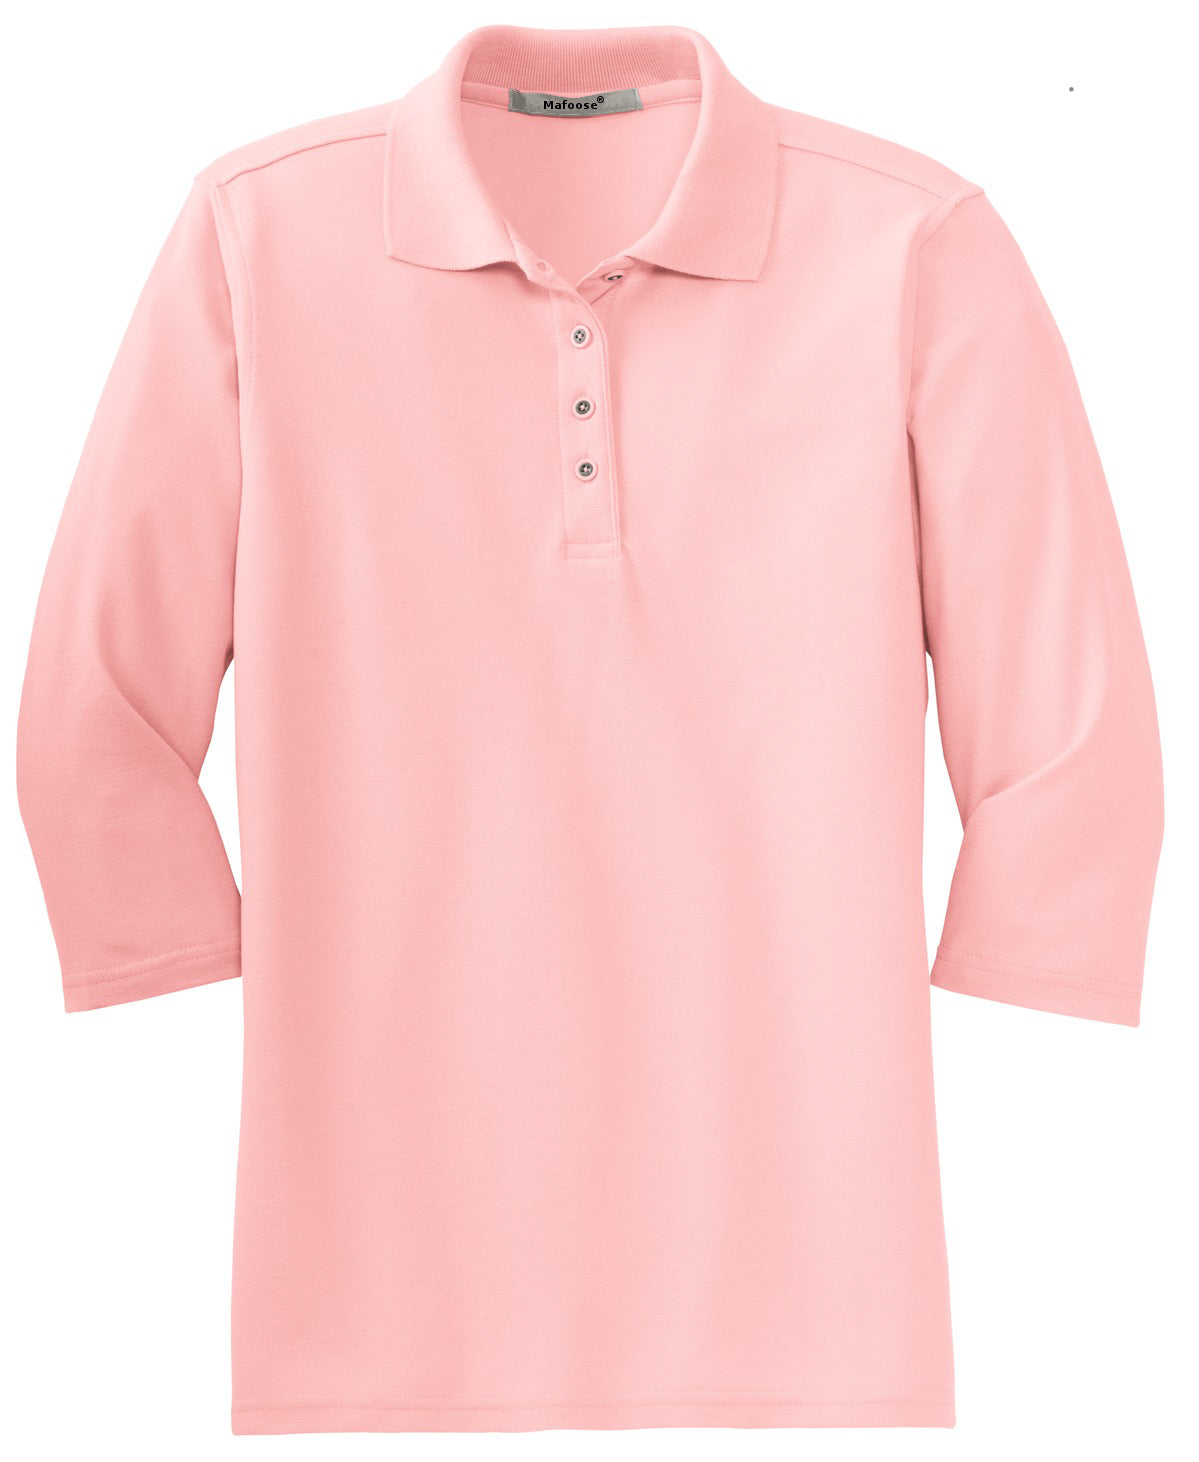 Mafoose Women's Silk Touch ¾ Sleeve Polo Shirt Light Pink-Front